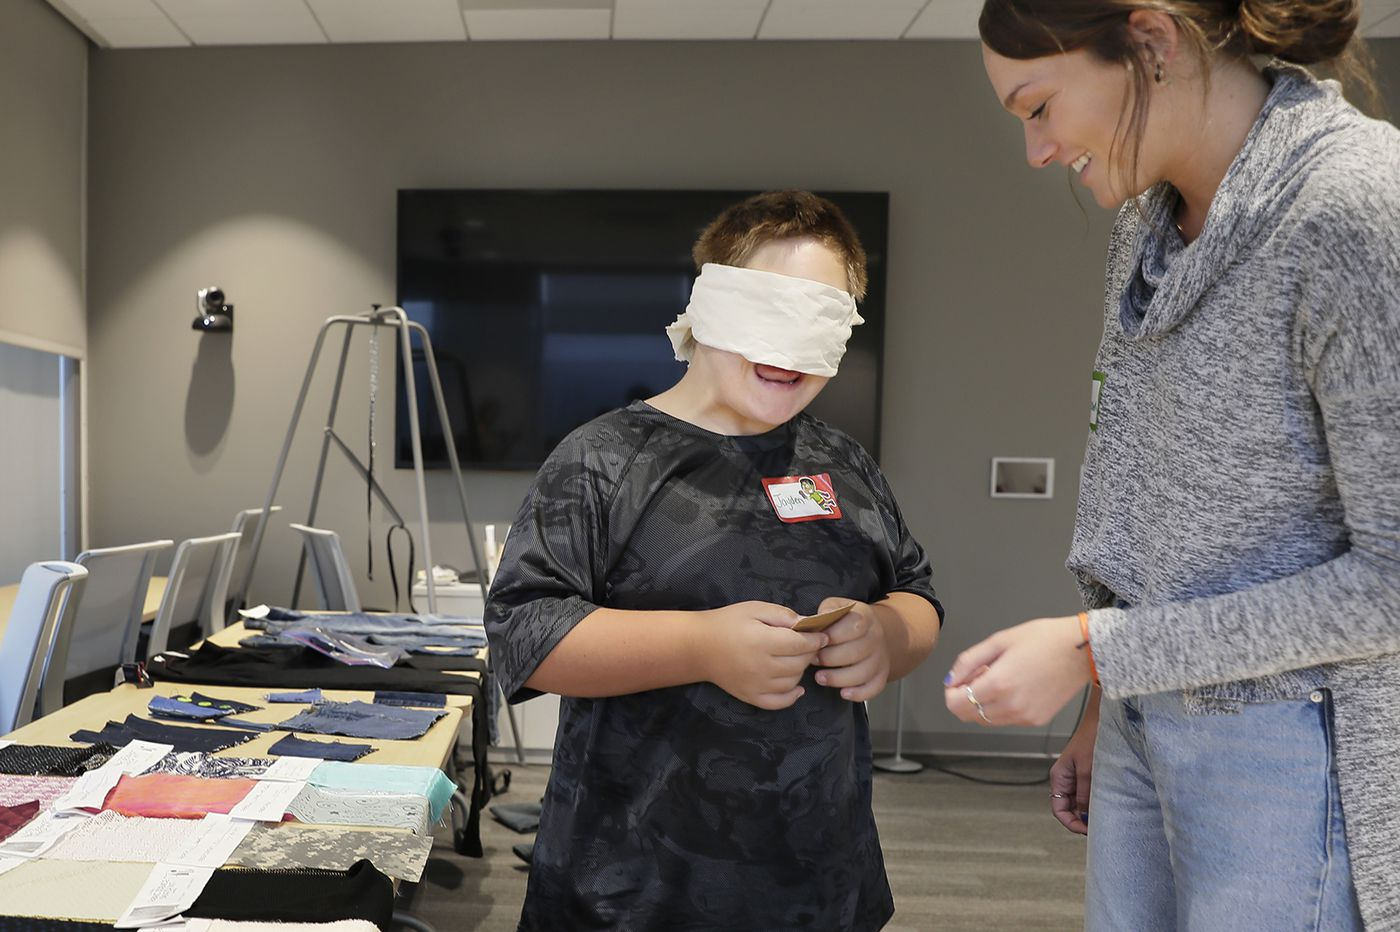 For those with Down syndrome, not all clothing is accessible. These researchers want to change that.